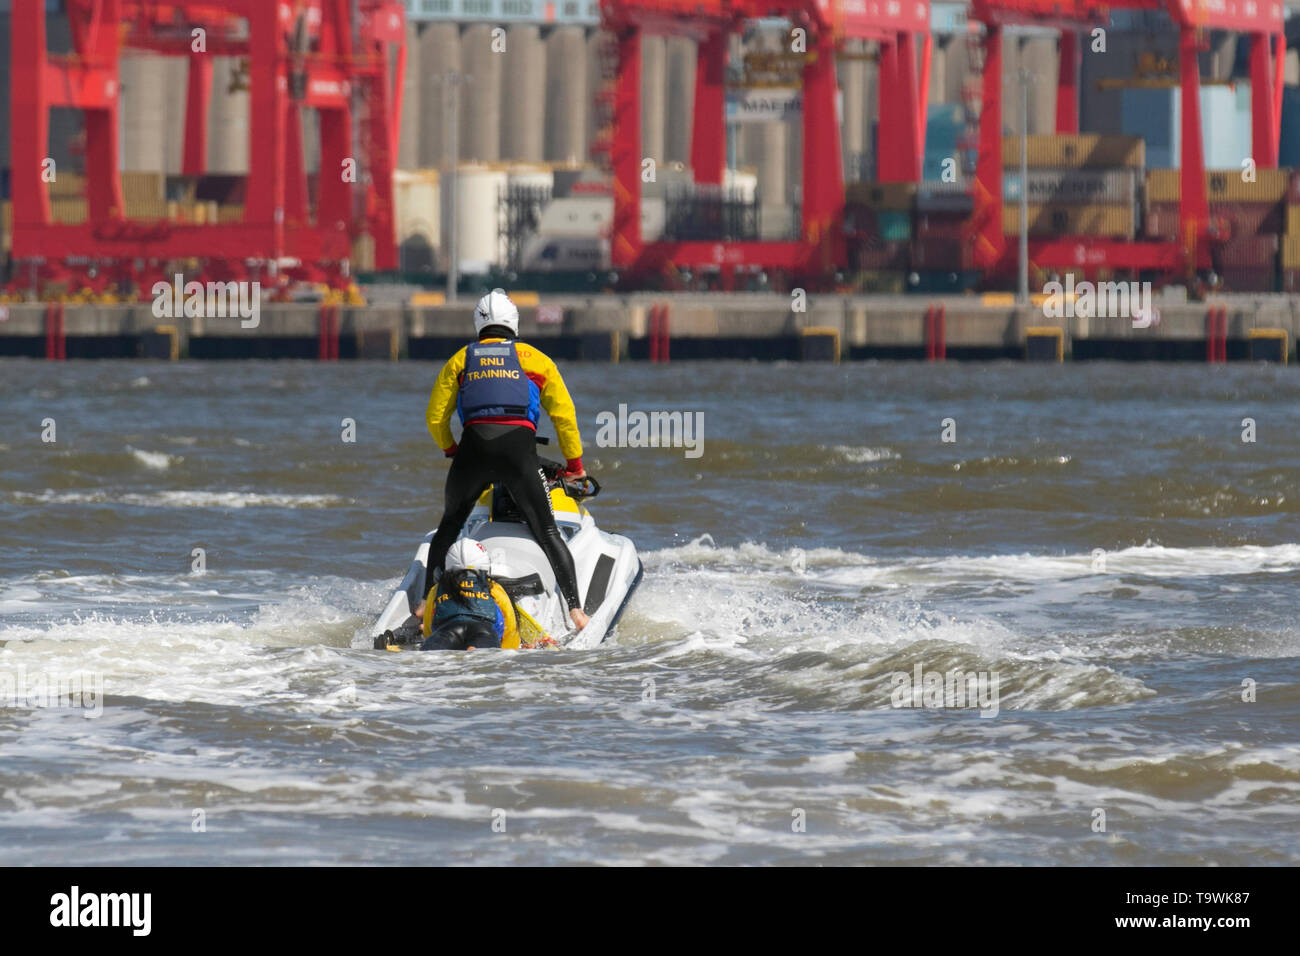 New Brighton, Wallasey. 21st May, 2019. UK Weather: Bright and sunny on the wirral riverside. RNLI Jetski training & rescue on the River Mersey using Yamaha craft. The exercise was a simulation of the lifeboat recovering a casualty from a high speed Jet Ski accident with the casualty being initially treated on the afloat lifeboat then the transfer of care to the shore based teams. Credit: MediaWorldImages/Alamy Live News - Stock Image